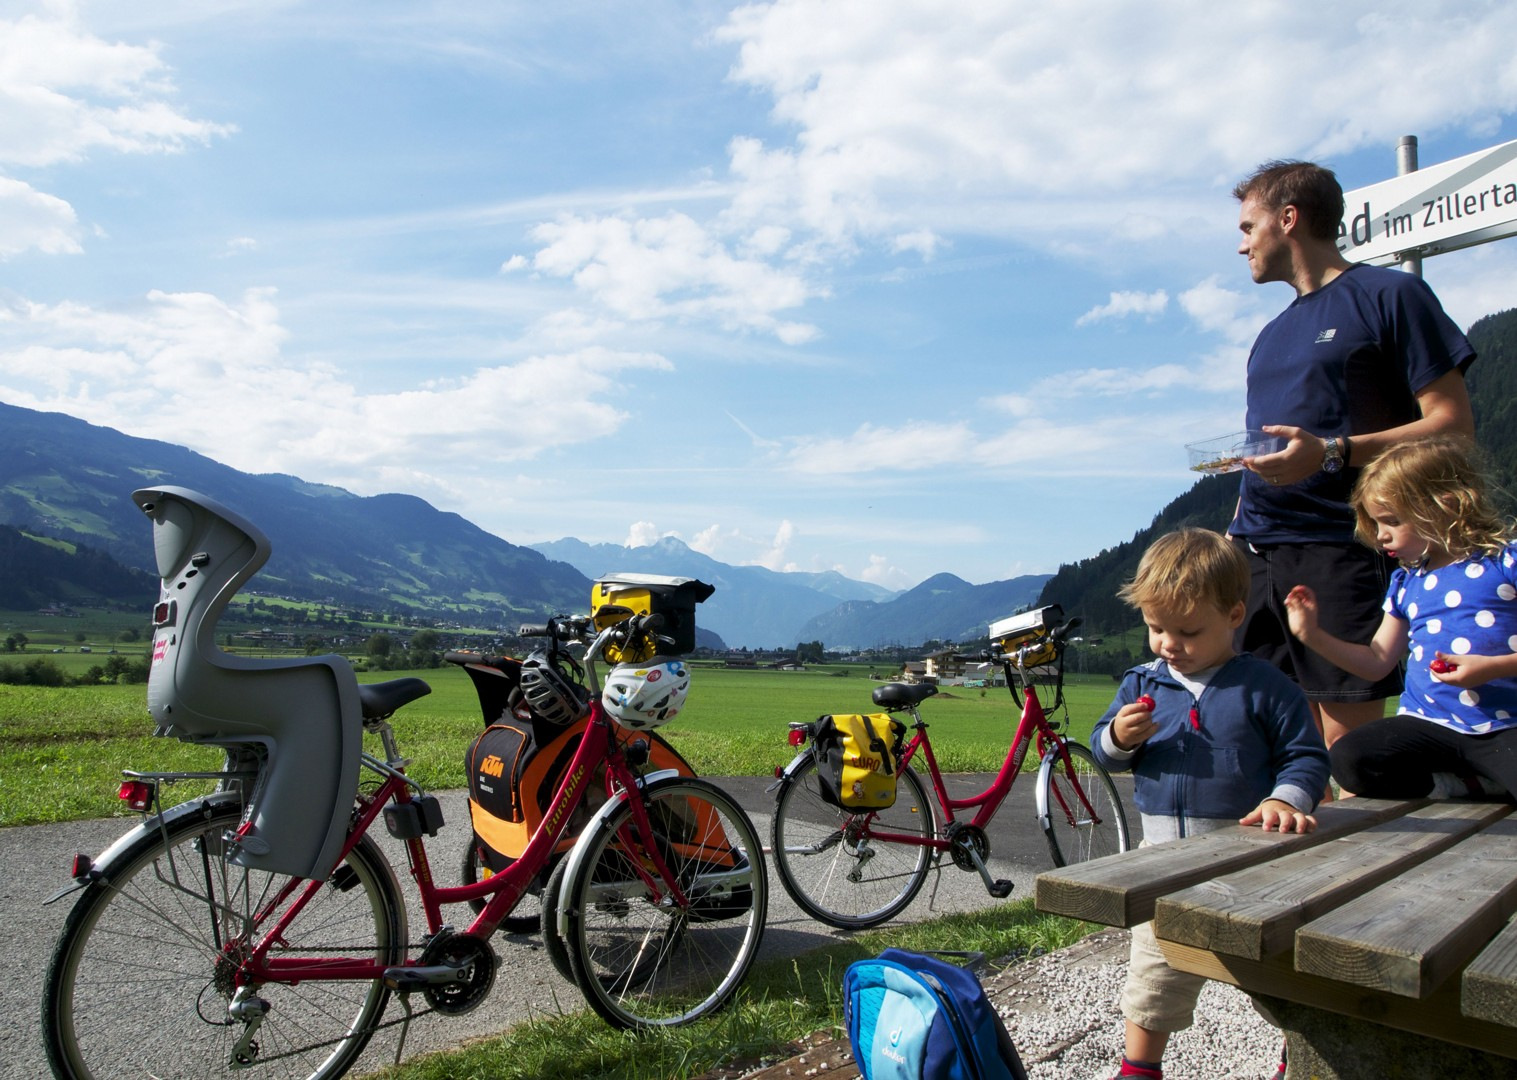 scenic-mountains-tyrolean-valleys-cycling-holiday.jpg - Austria - Tyrolean Valleys - Family Cycling